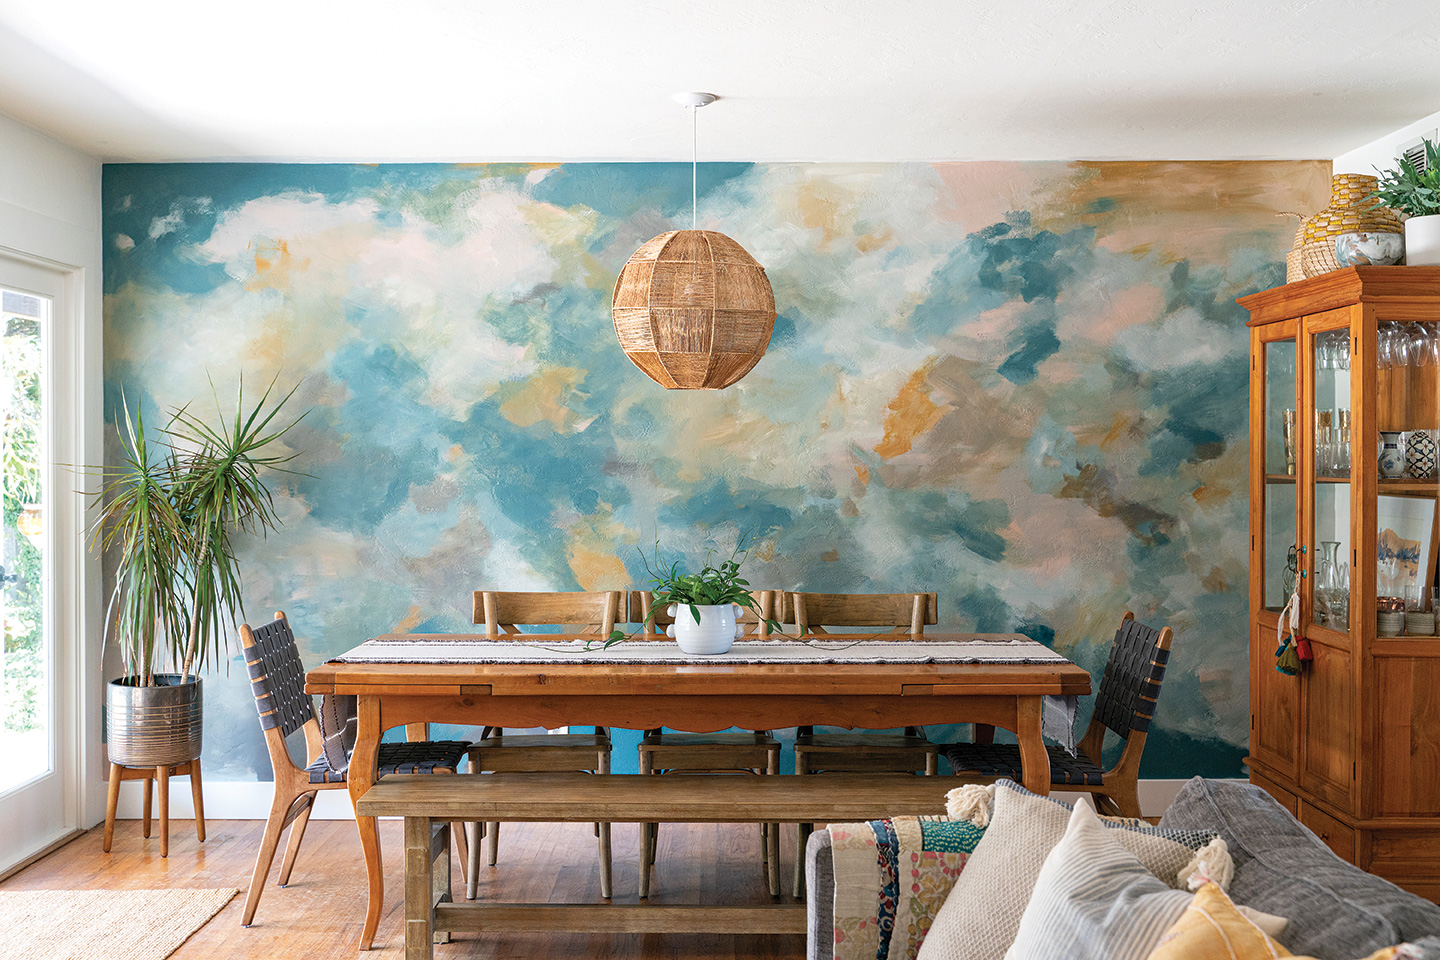 DIY abstract mural jennifer mchugh san diego